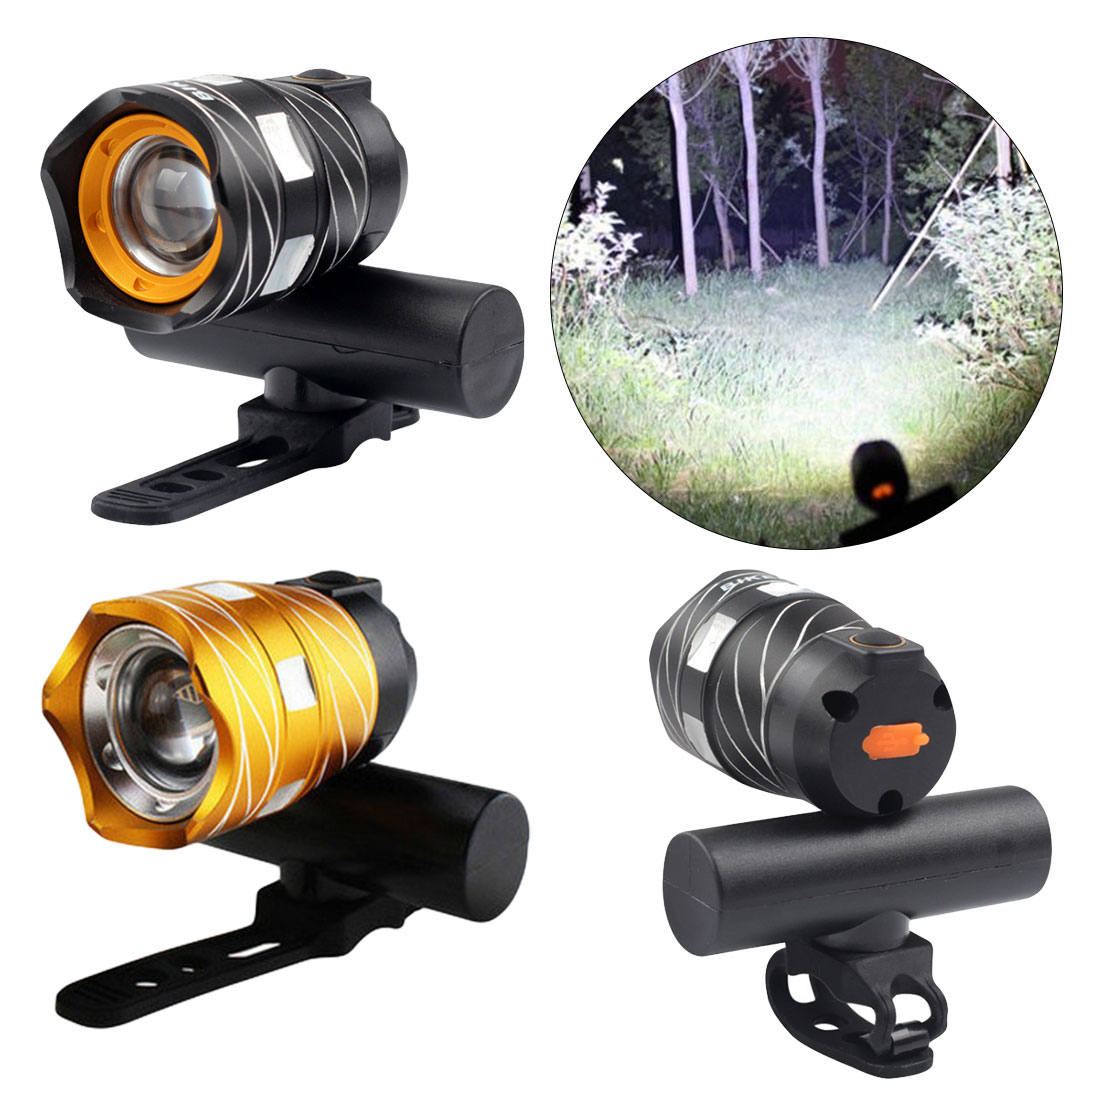 <font><b>T6</b></font> 400 Meters <font><b>LED</b></font> <font><b>Bicycle</b></font> <font><b>Light</b></font> Bike Front Lamp Outdoor Torch Headlight USB Rechargeable Built-in Battery 15000LM image